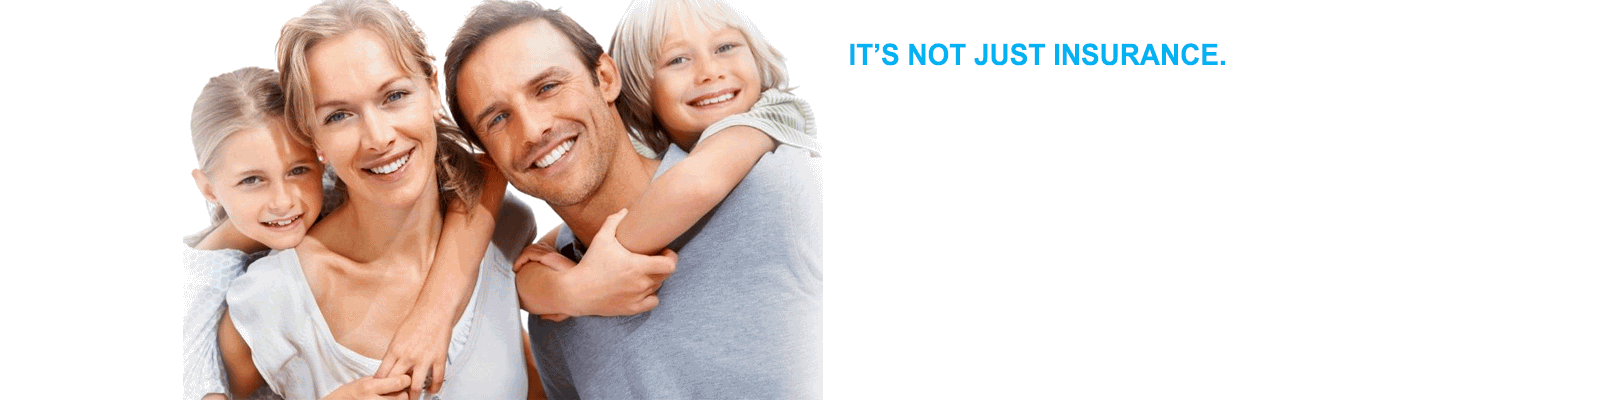 New Jersey Life Insurance Quotes Glamorous 20 New Jersey Life Insurance  Quotes And Images Quotesbae